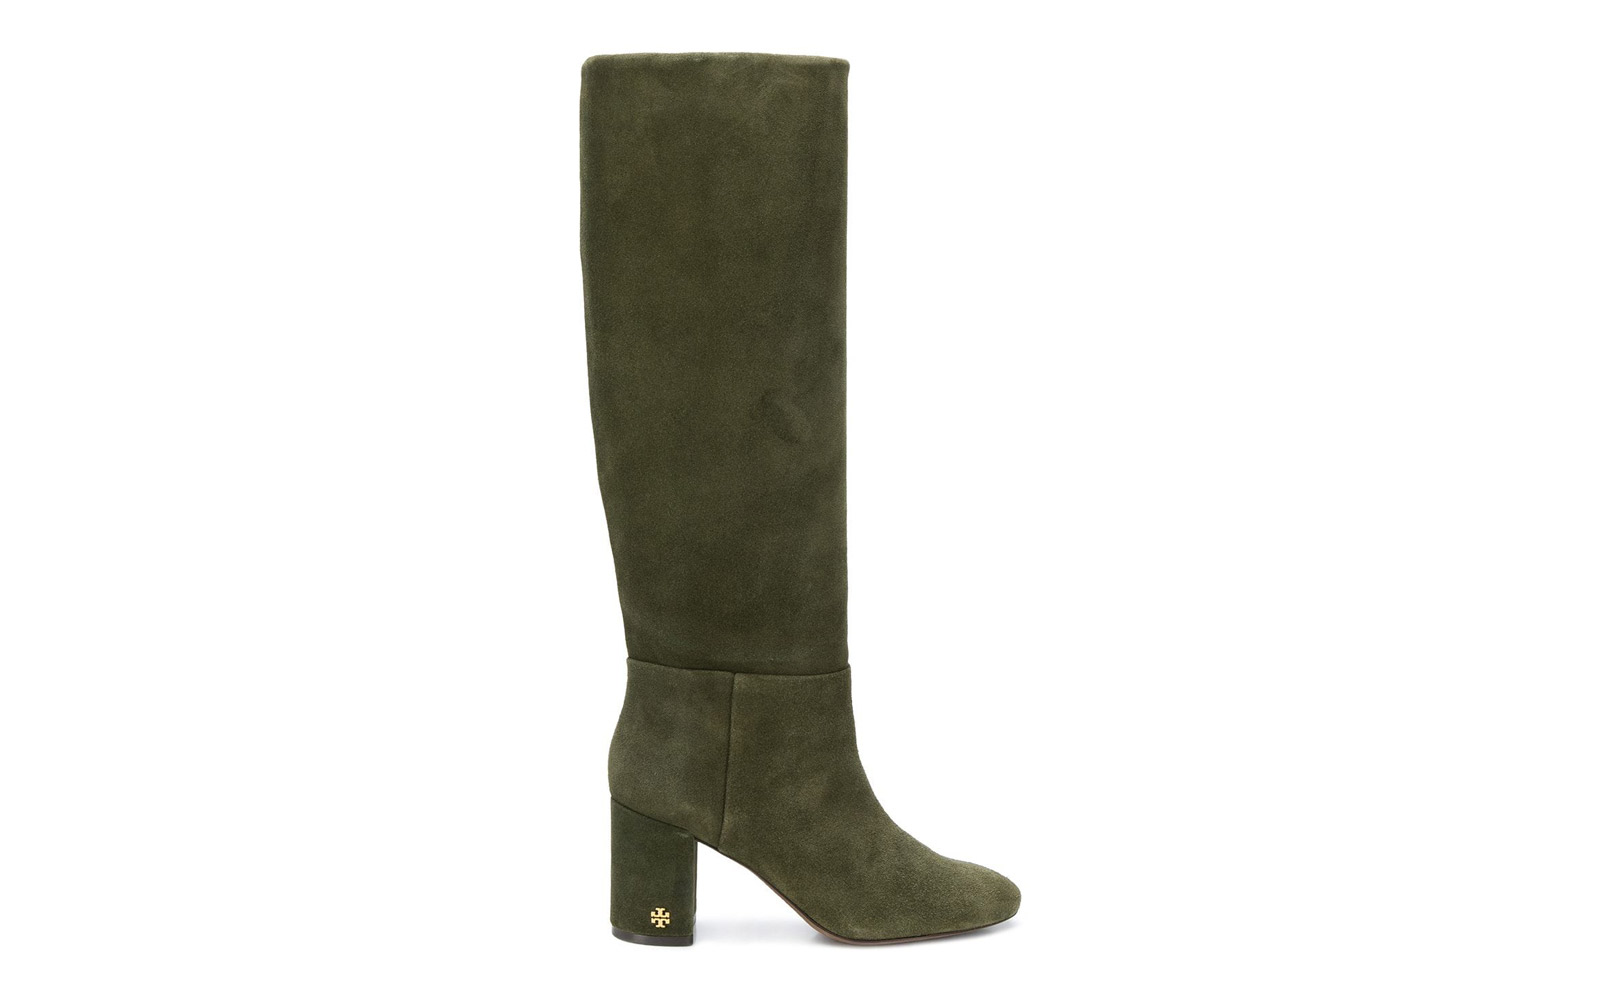 f54652fcdc15 Tory Burch Brooke Slouchy Boot. suede green boots meghan markle. Courtesy  of Farfetch